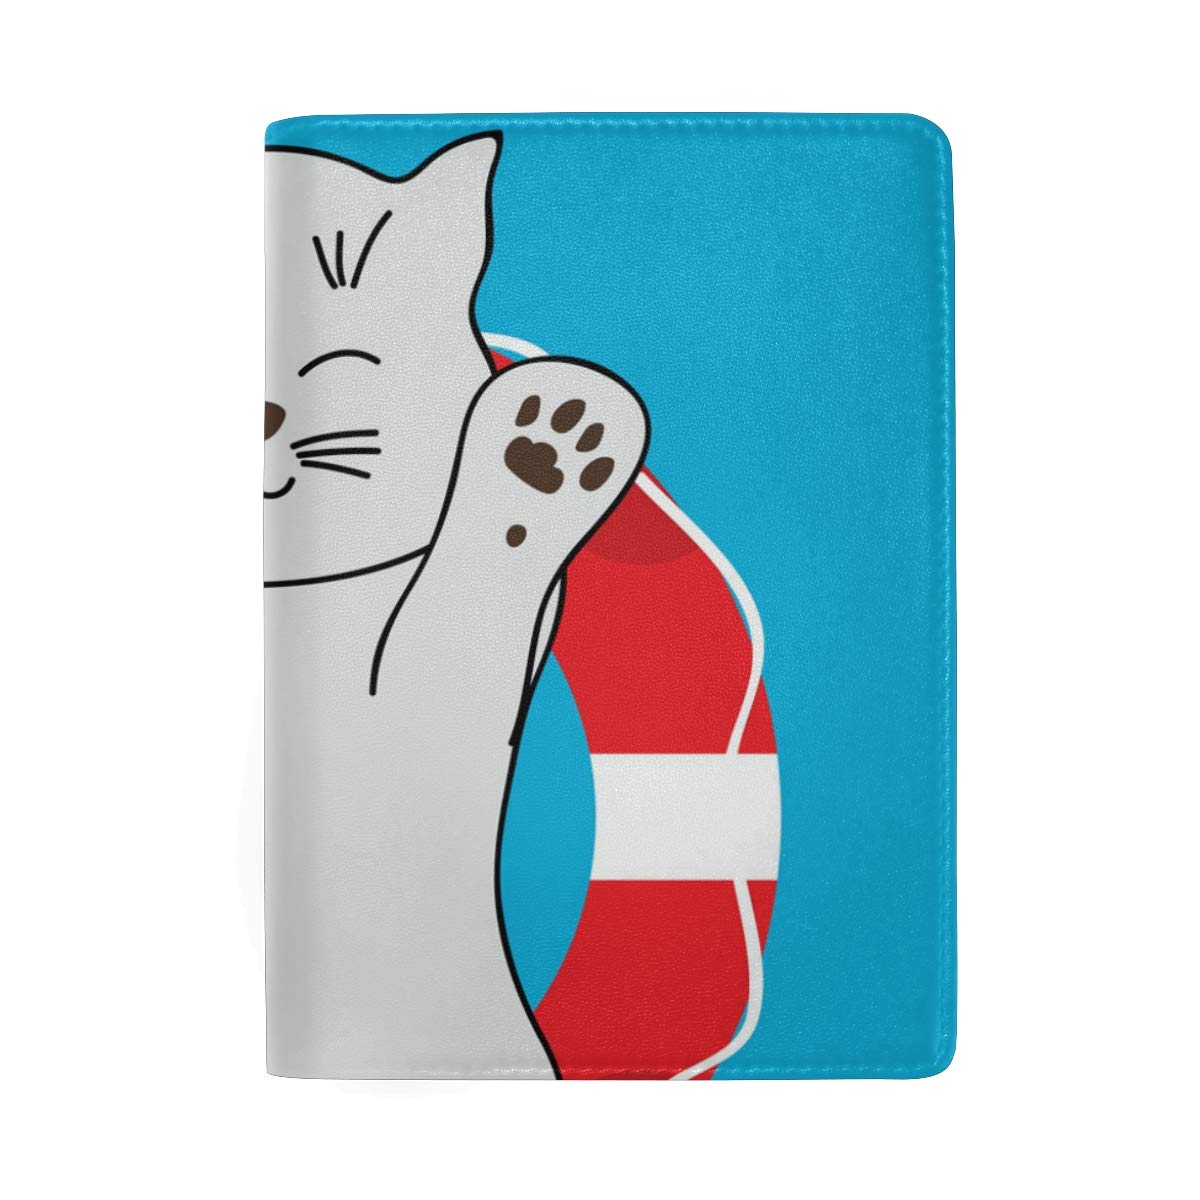 Cute Cat Buoy On The Pool Leather Passport Holder Cover Case Protector for Men Women Travel with Slots